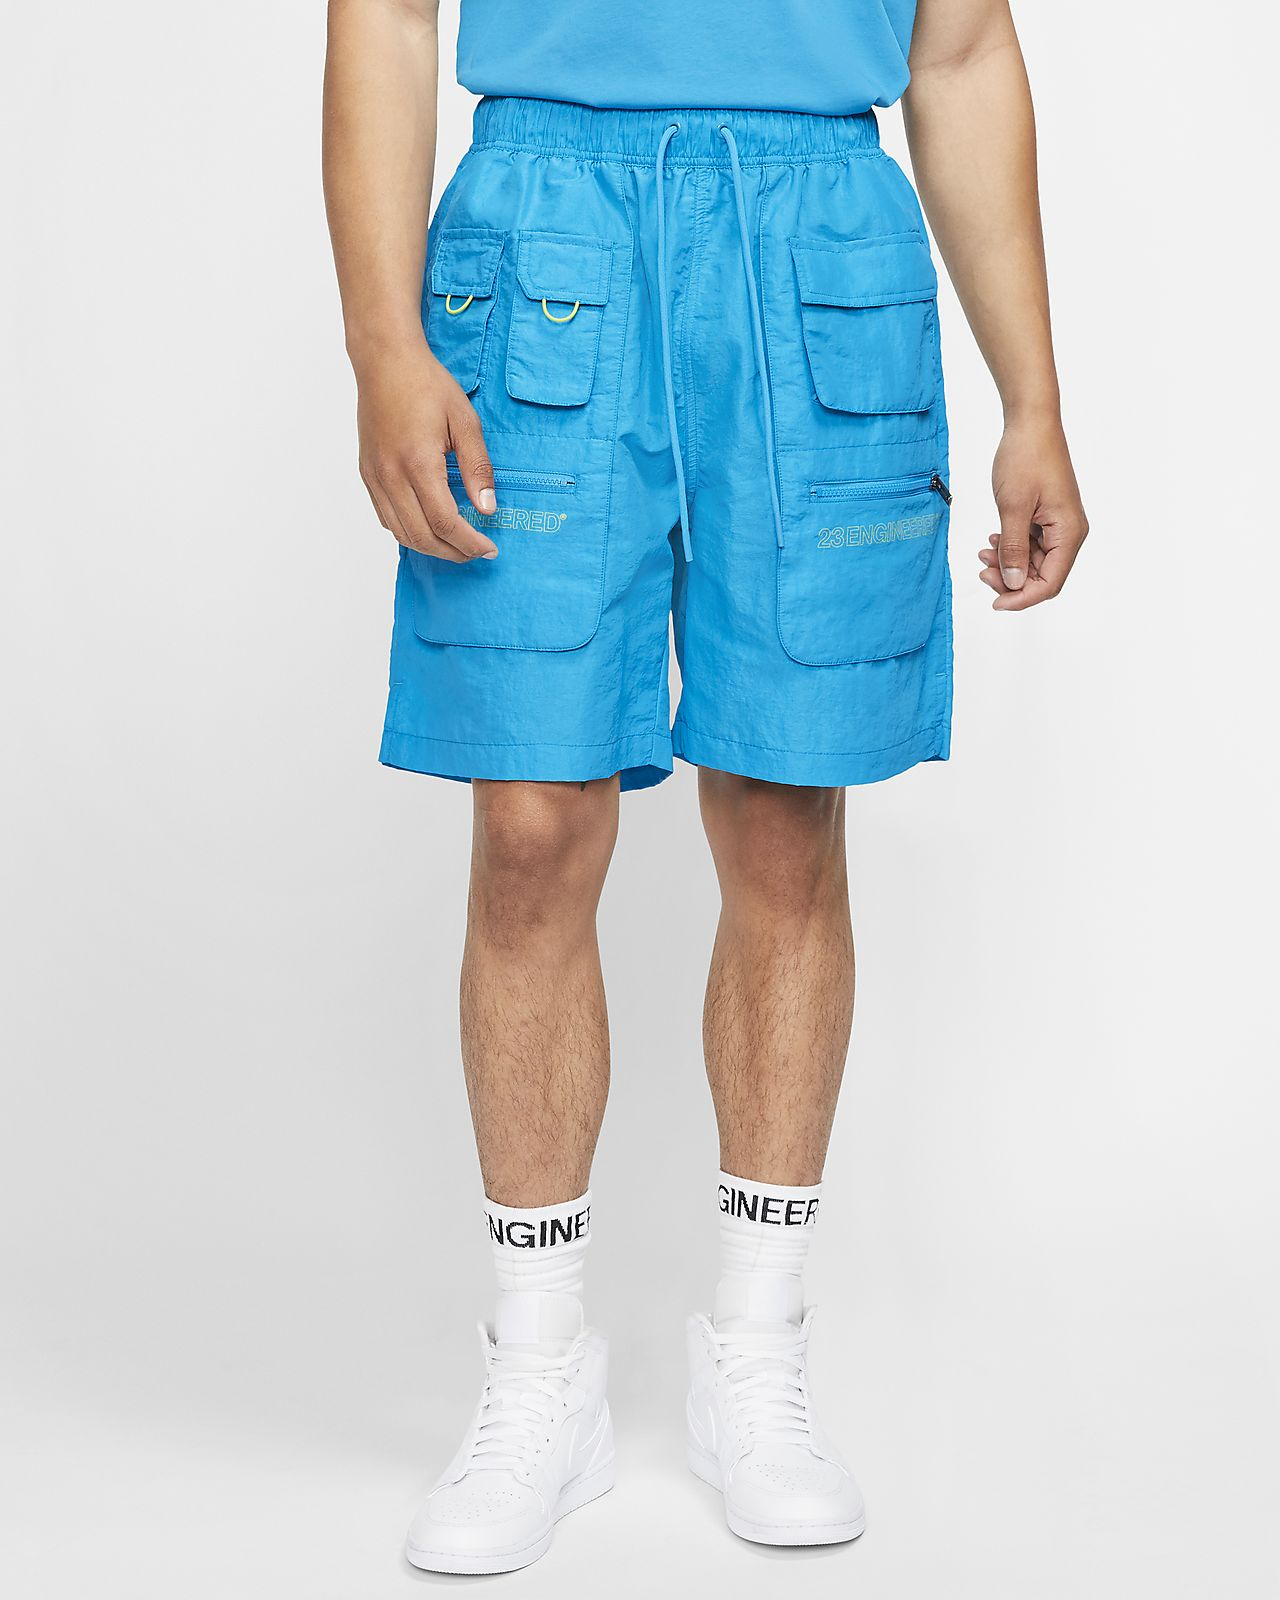 Jordan 23 Engineered Men's Utility Shorts